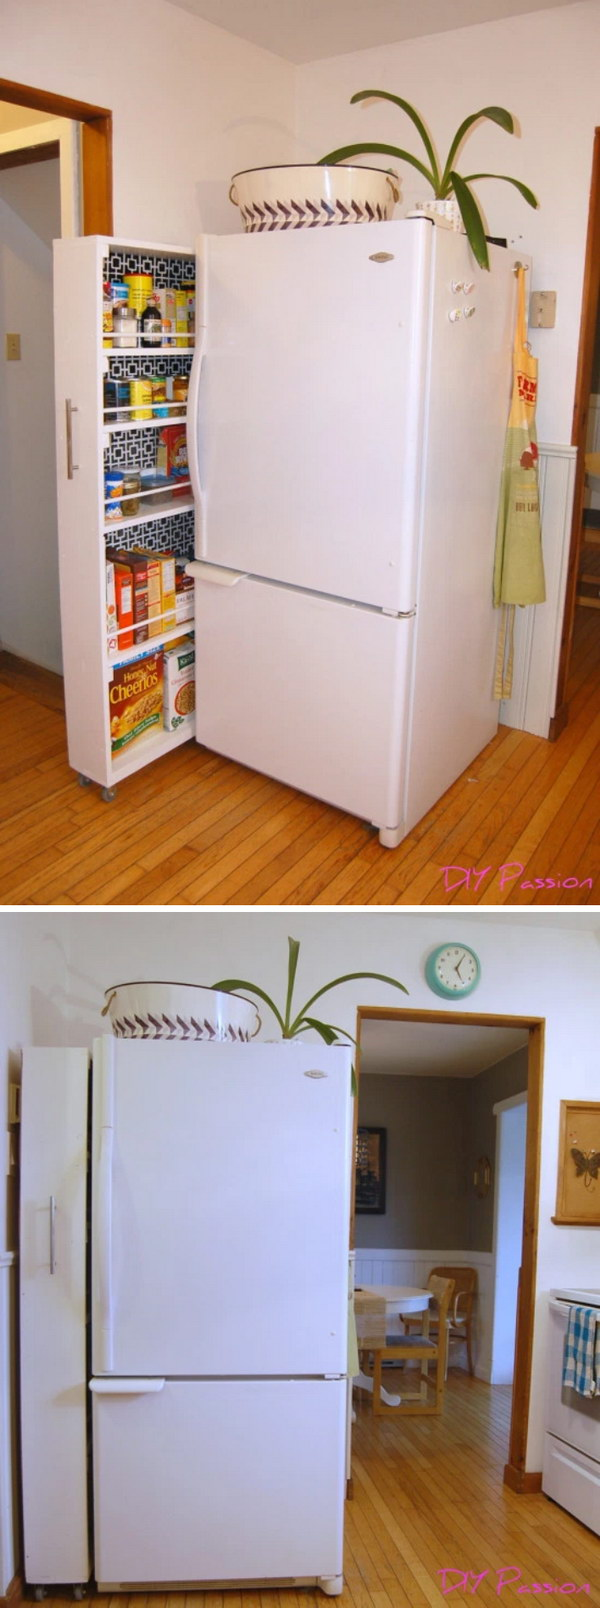 50 Easy Storage Ideas For Small Spaces 2017